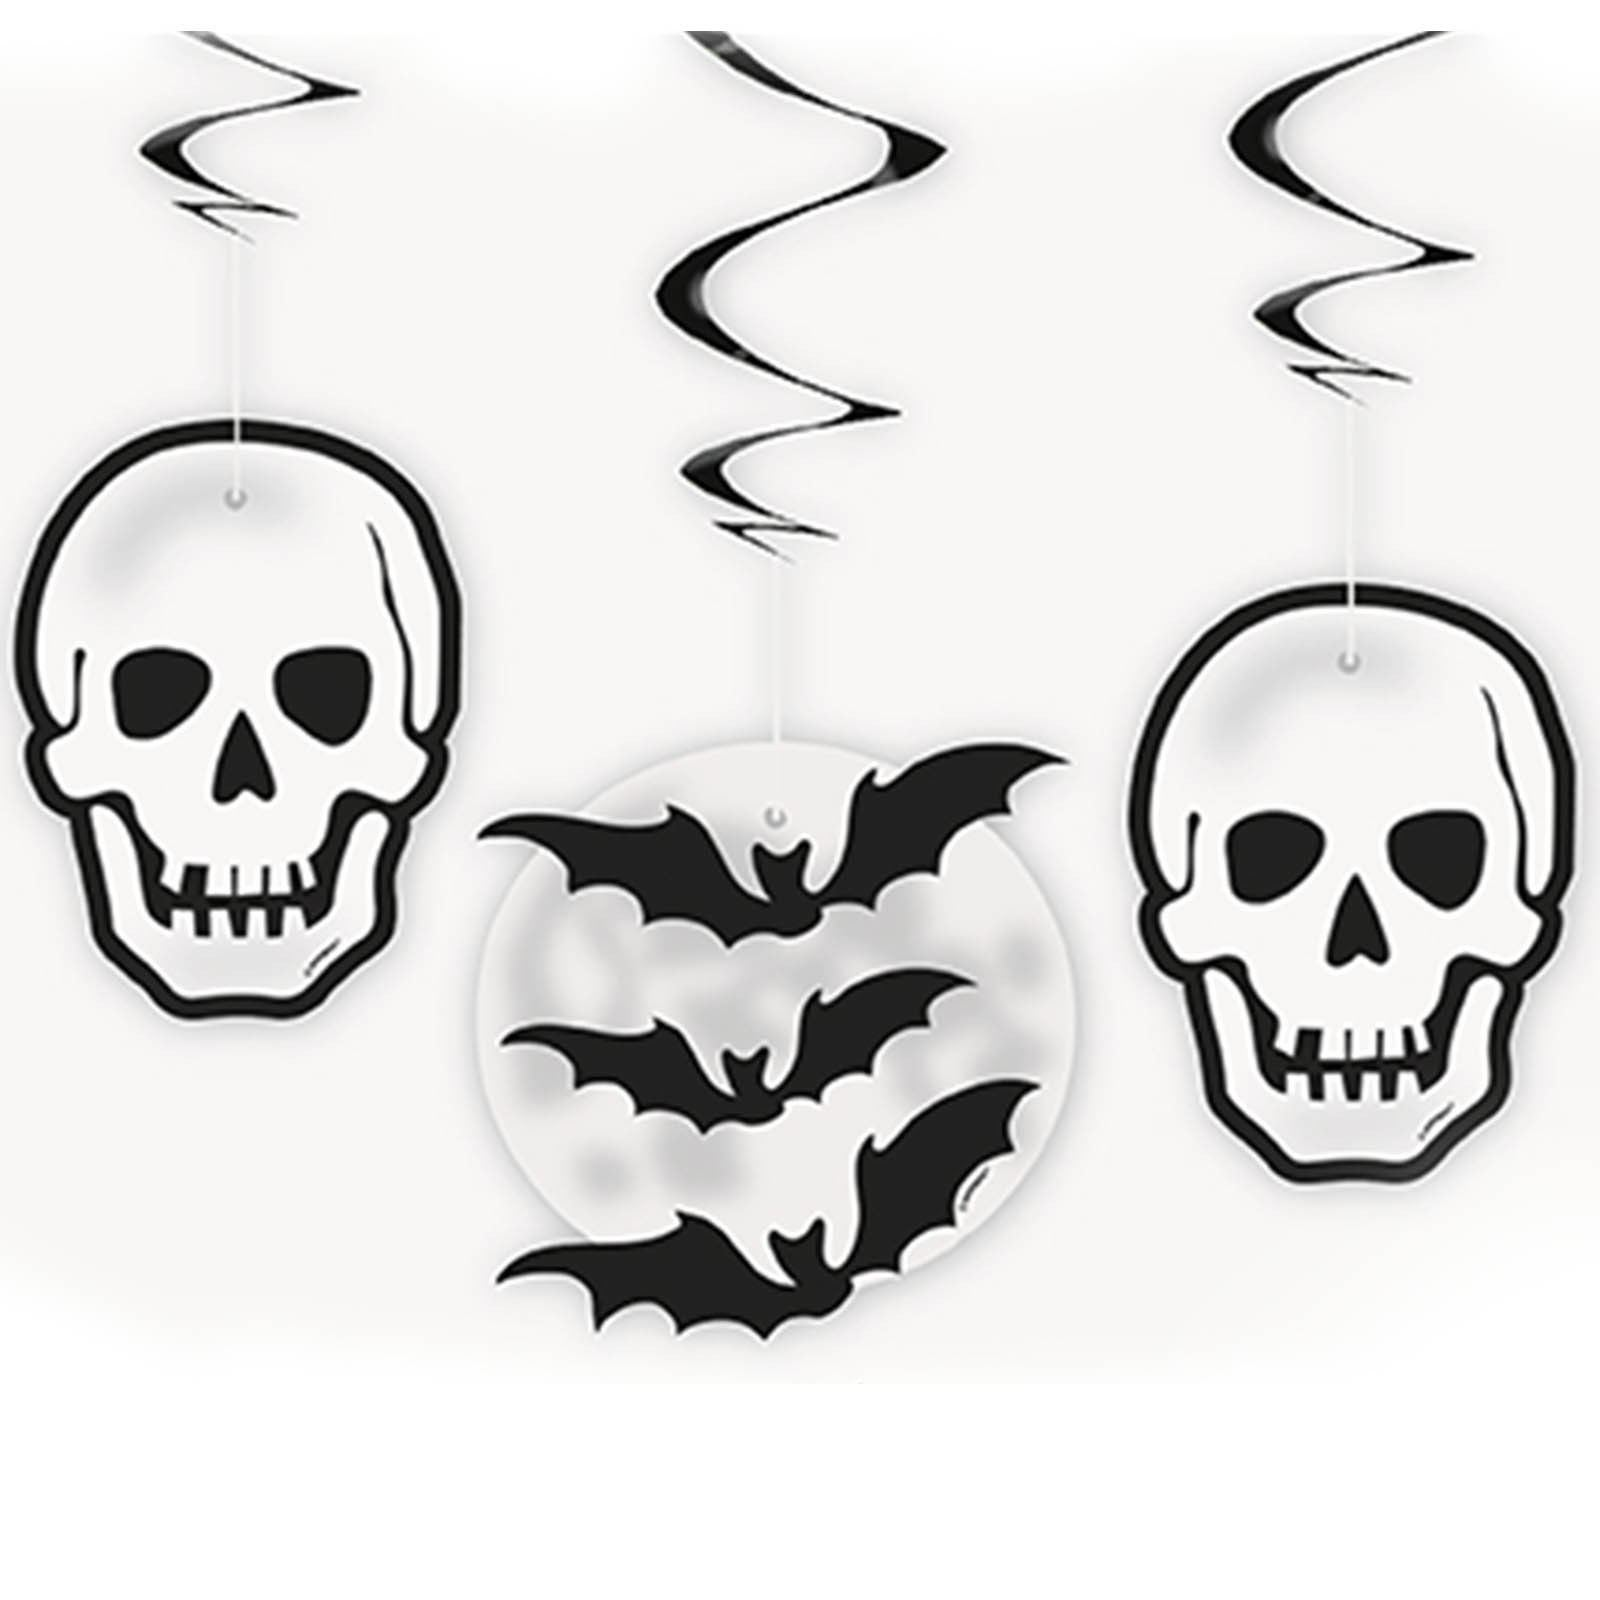 1600x1600 Halloween Hanging Foil Swirl Party Decorations Skulls Pumpkins